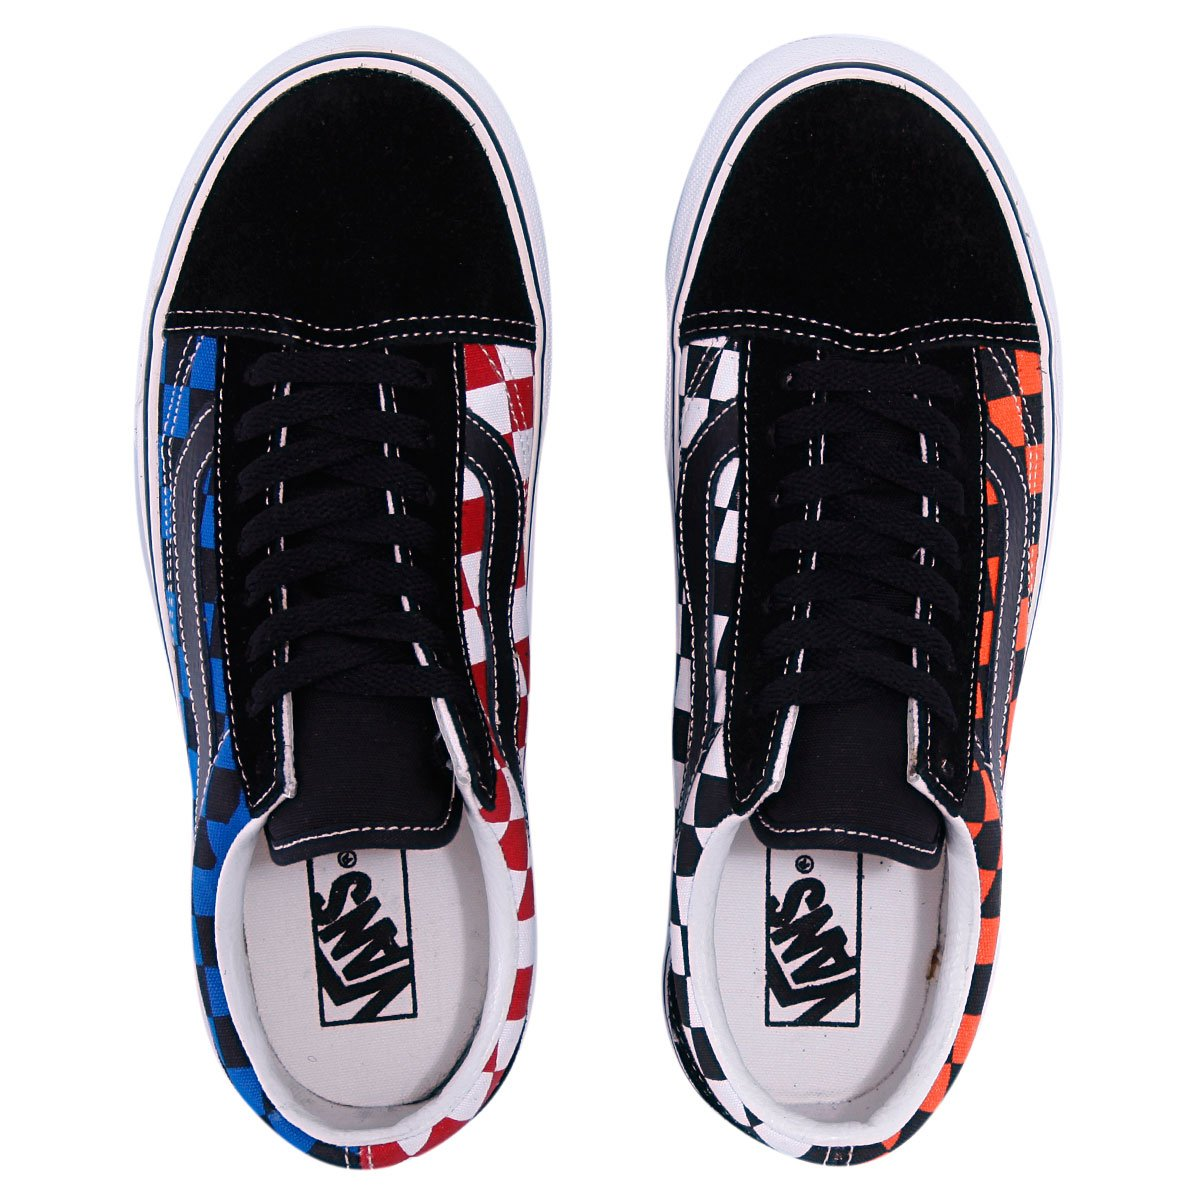 Купить кеды Vans Old Skool Black Flame Snorkel Blue (070711vans151 ... 0781c91189c1e